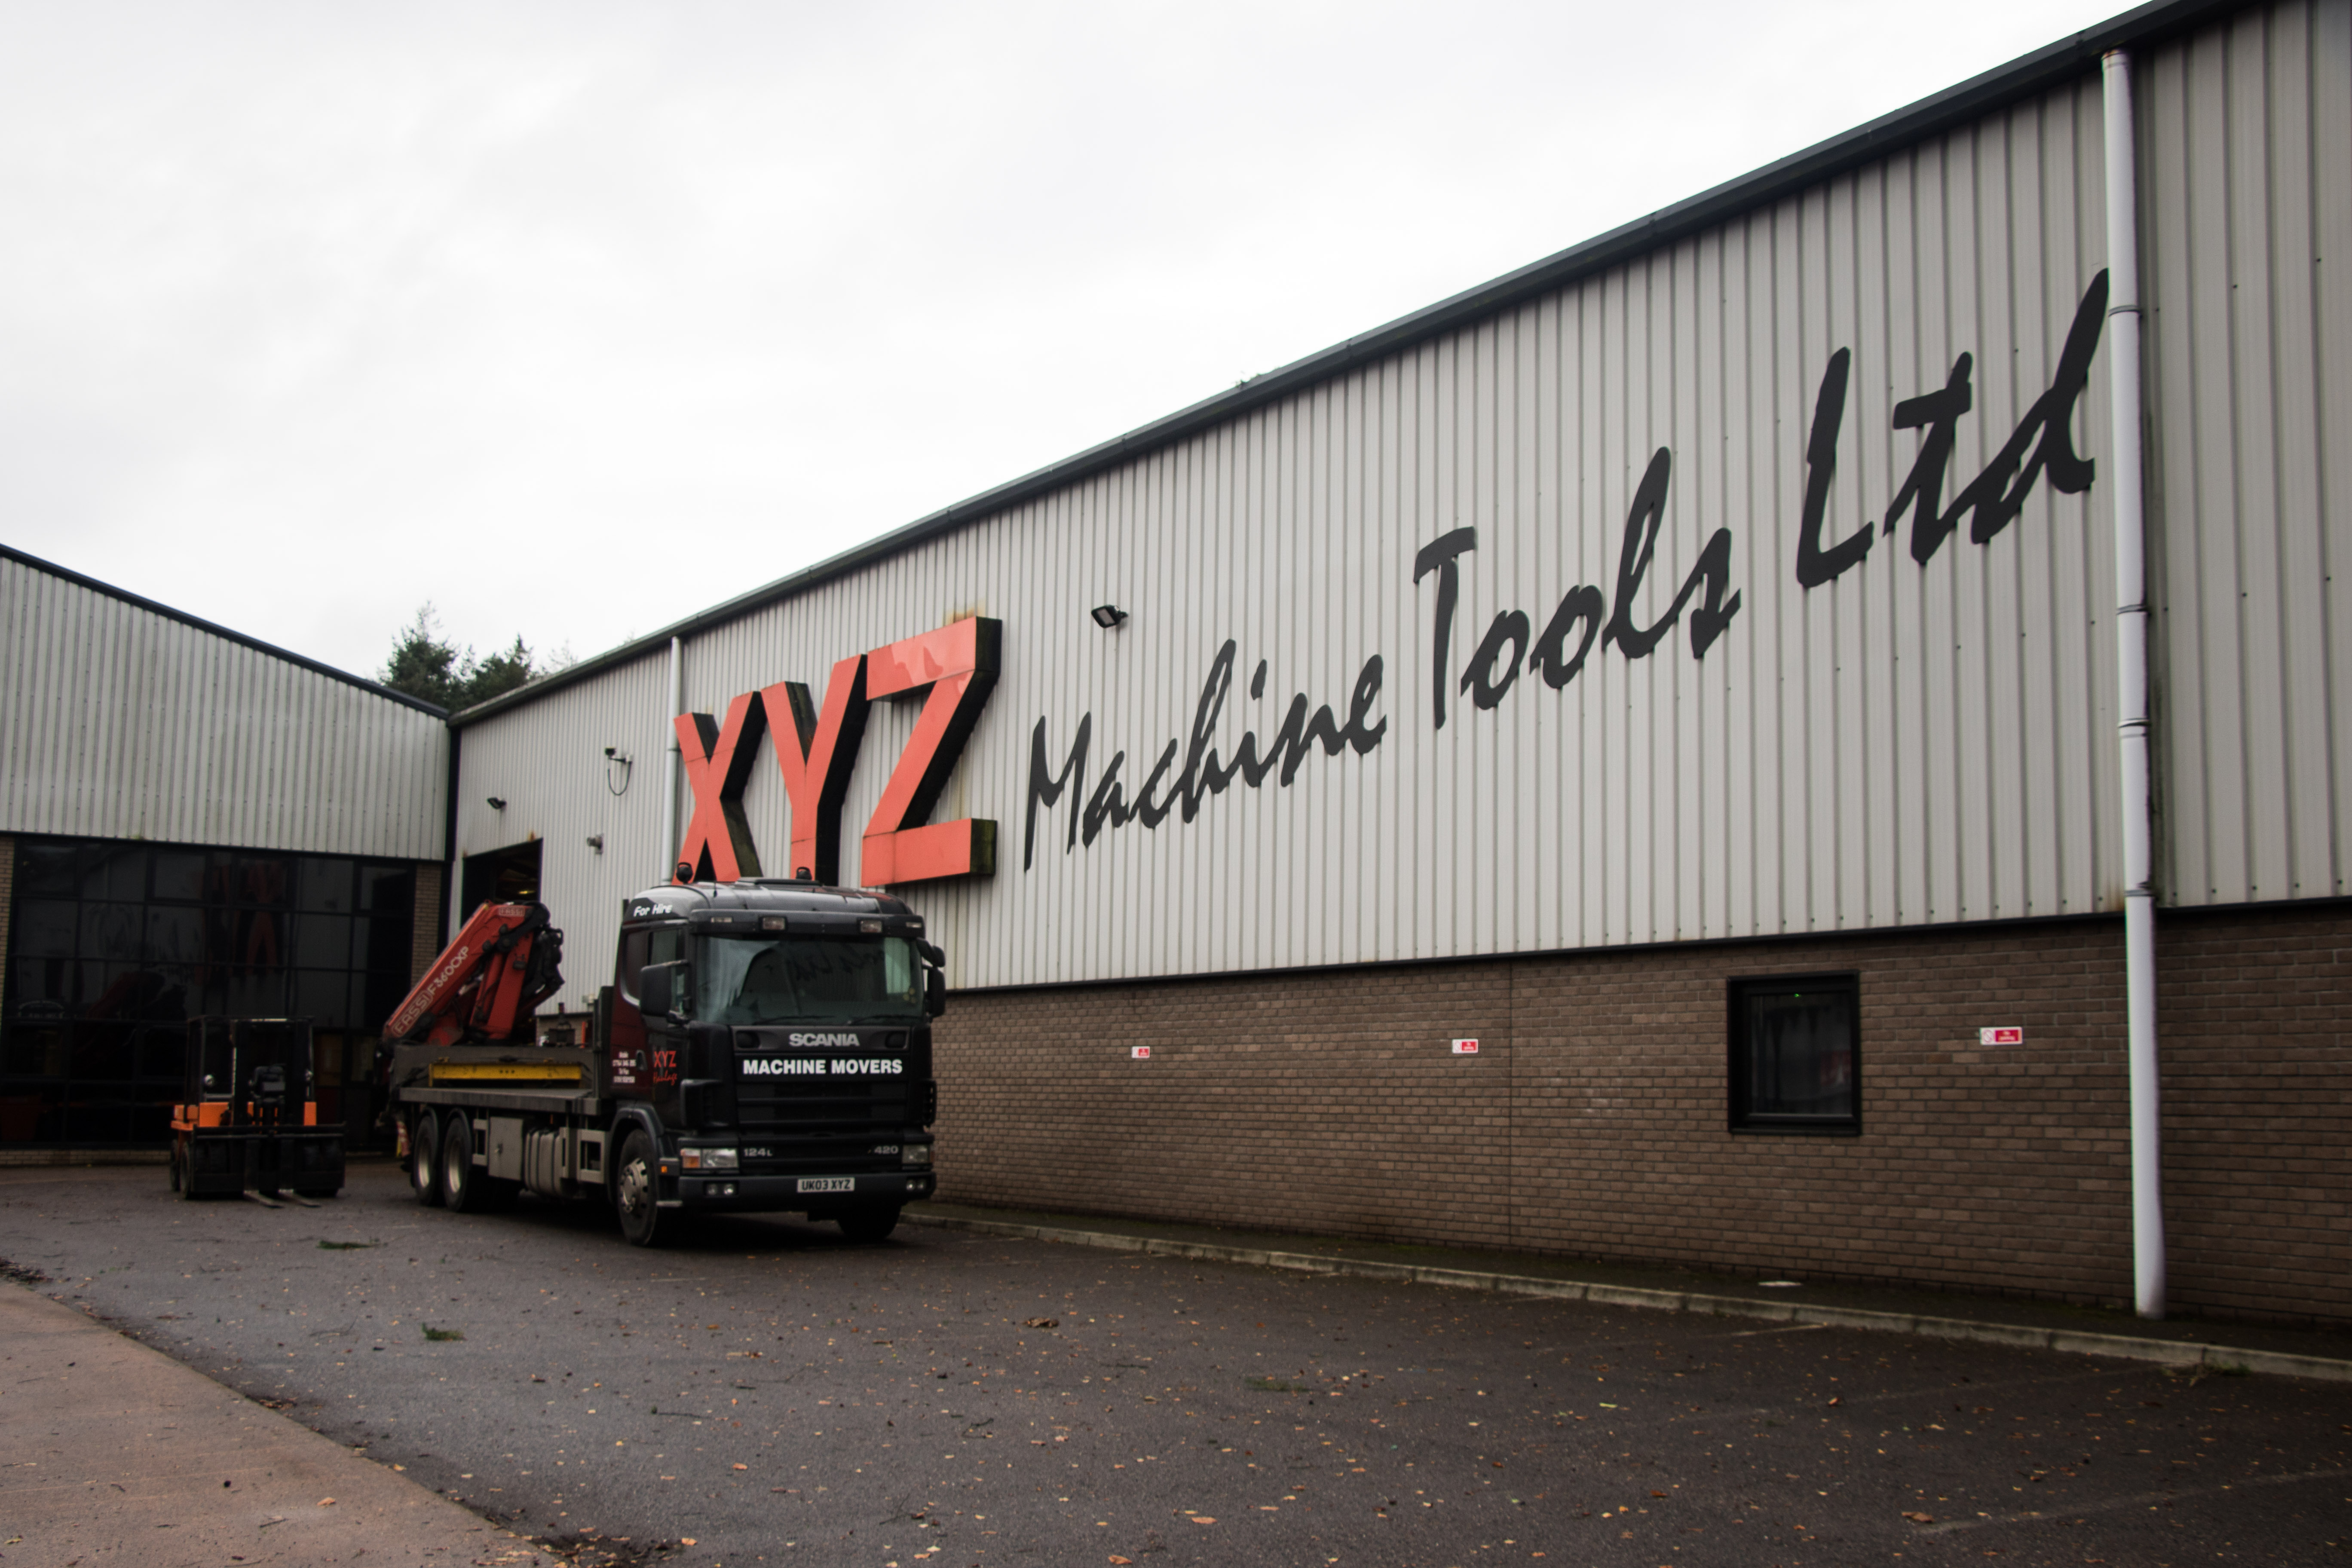 XYZ announces opening of its Slough showroom